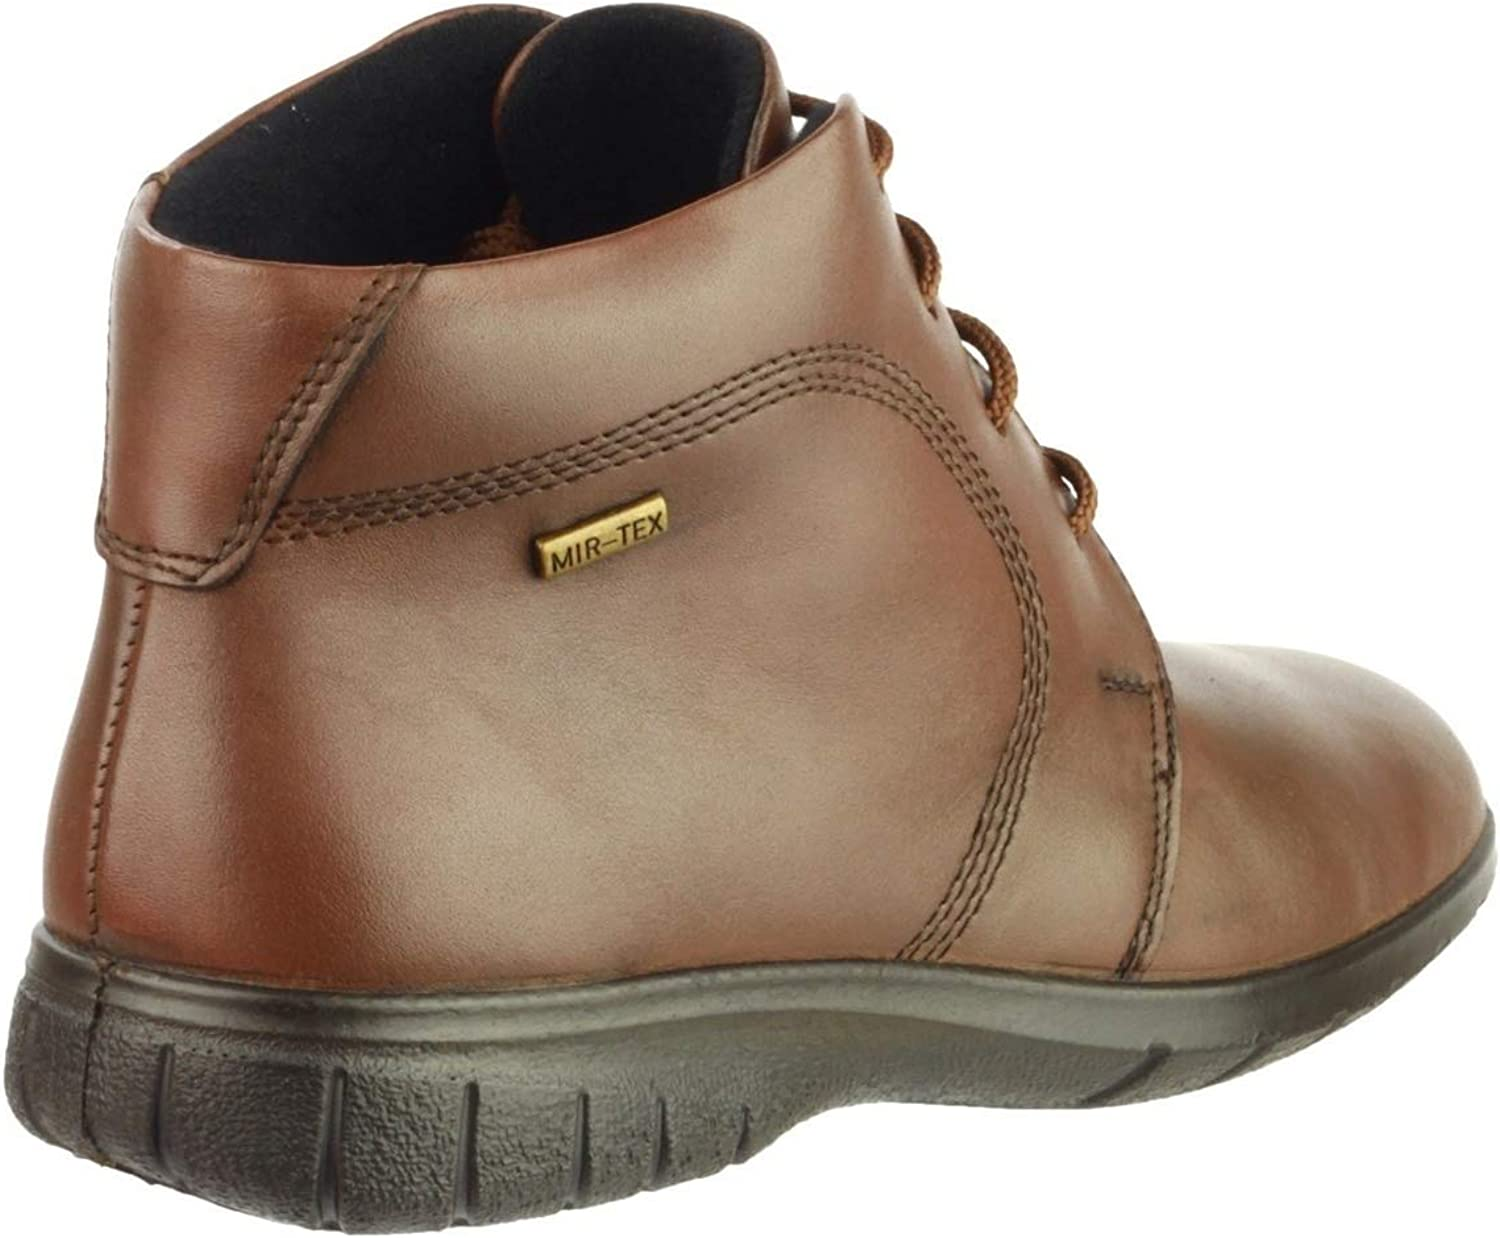 Cotswold BIBURY Womens Ladies Waterproof Padded Lace-Up Comfy Ankle Boots Brown